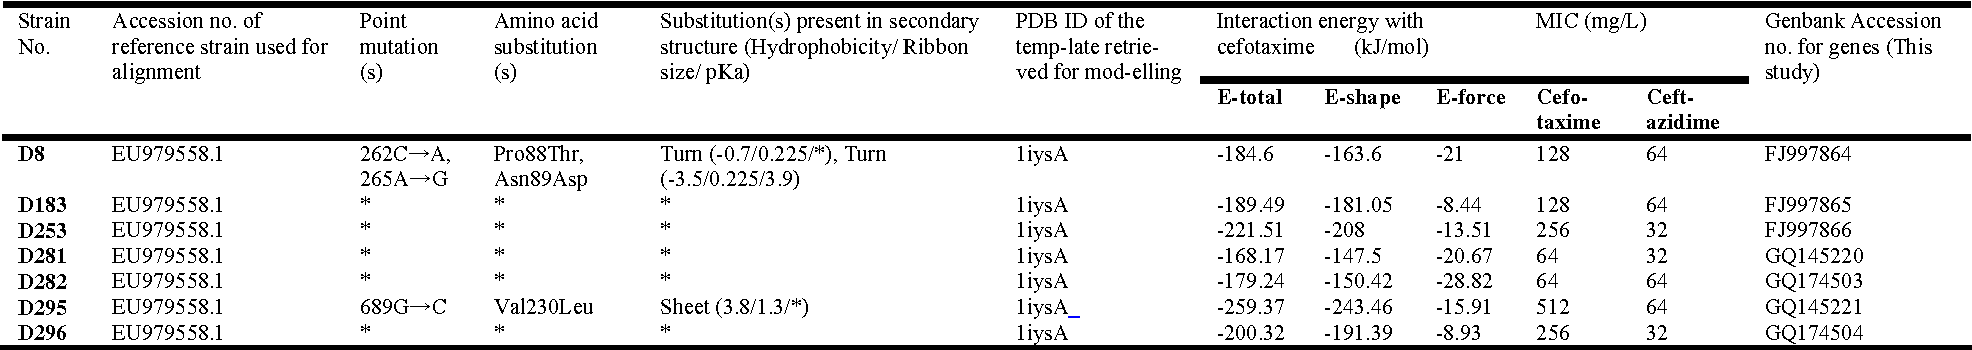 Table 1: Characteristics of gene sequences, modelled enzymes and enzyme-drug complexes along with cefotaxime and ceftazidime minimum inhibitory concentration (MIC)-values for E. coli strains. *Not found/Not calculated by software.